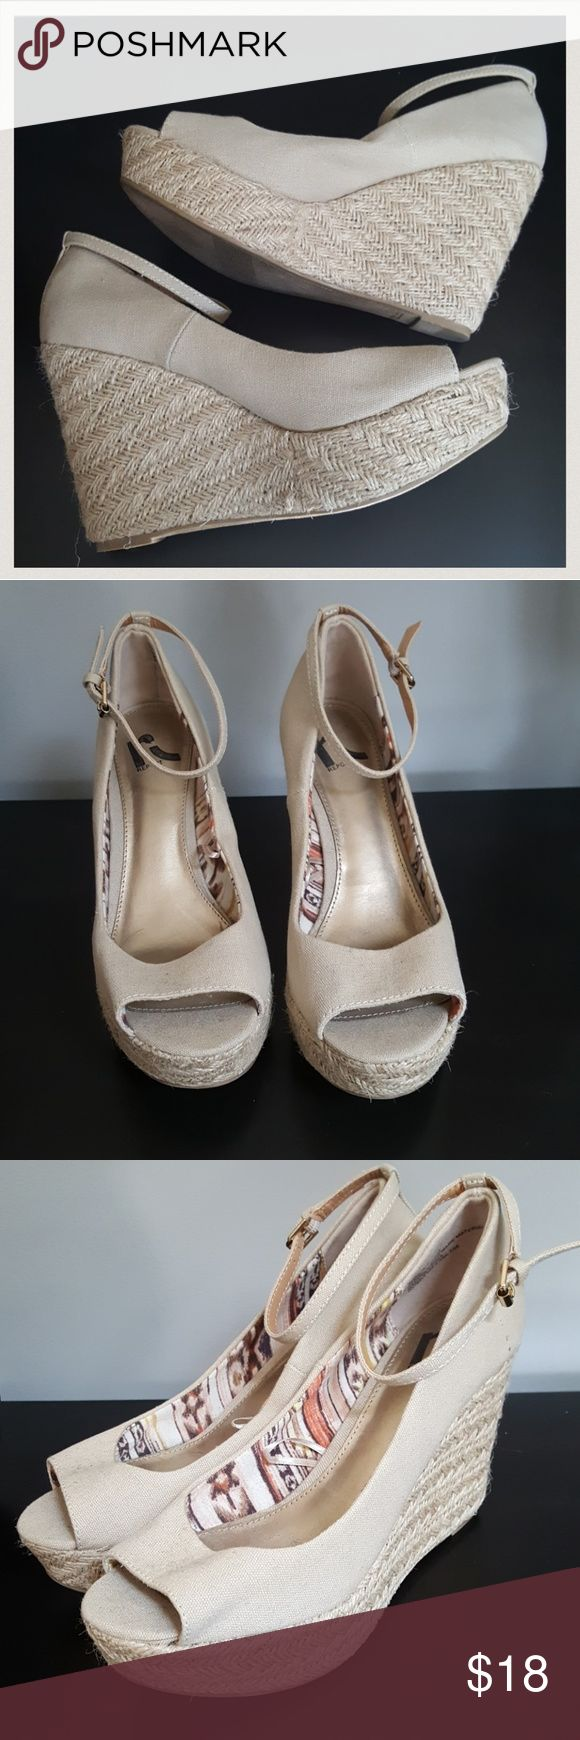 """REPORT Sexy Comfy Cream Wedges sz 8.5 Used once! In great condition ladies. Super comfy , selling for my sister she's pregnant will not be using anything with a heel for awhile.  Heel at its highest almost 4.5"""" Report Shoes Wedges"""